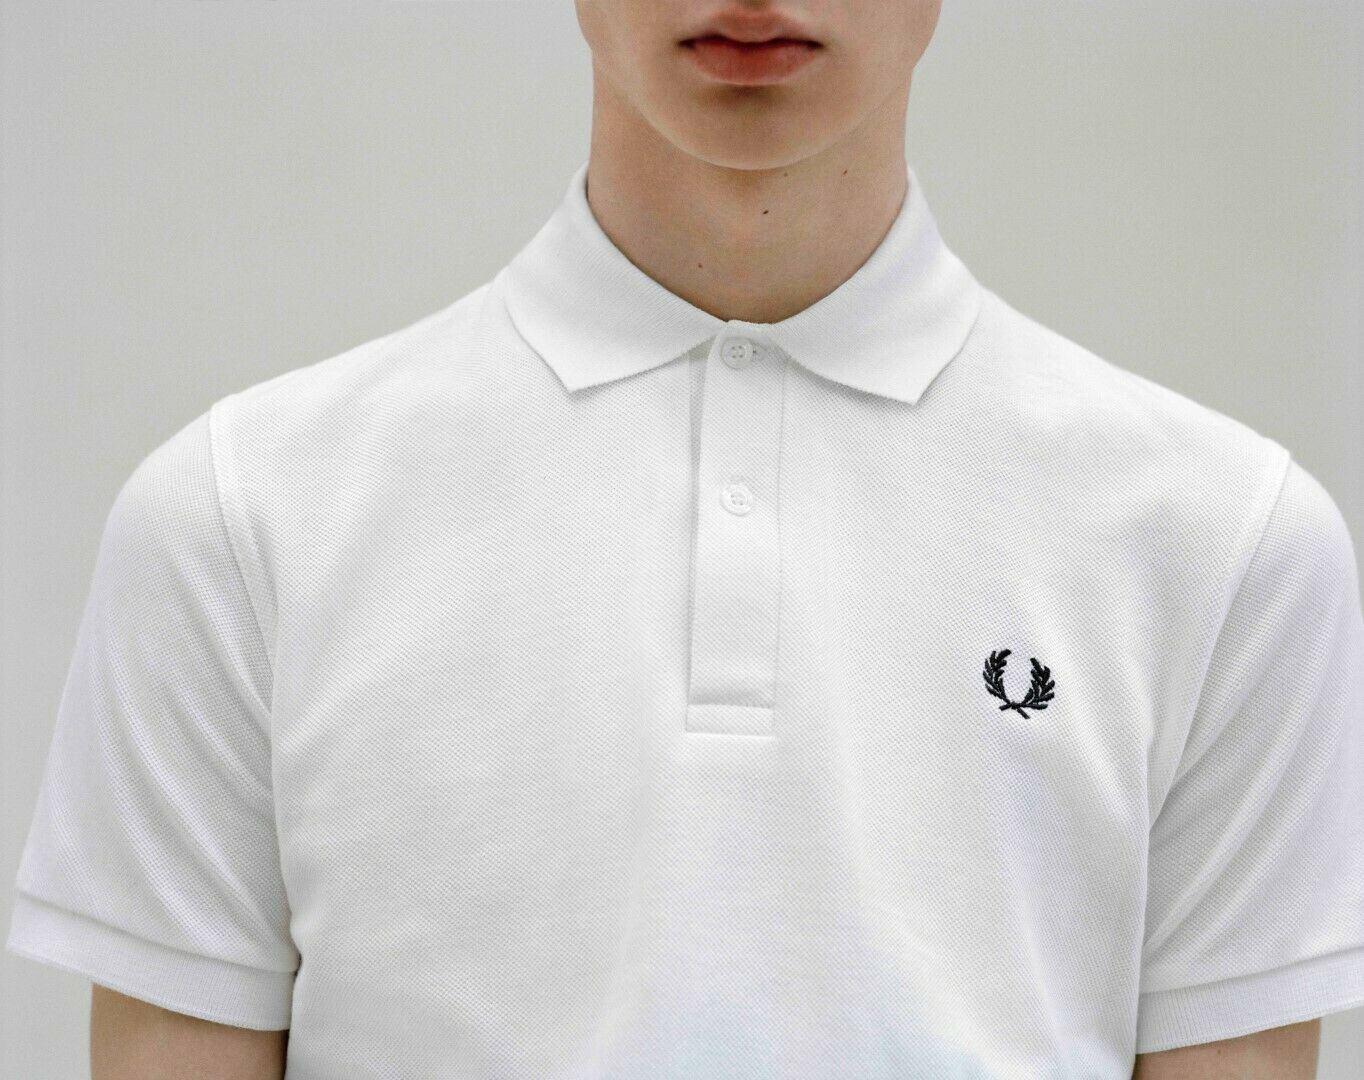 FRED PERRY REISSUES M3 POLOSHIRT MADE IN ENGLAND  DESC WHITE MODS CASUALS SUBCUL